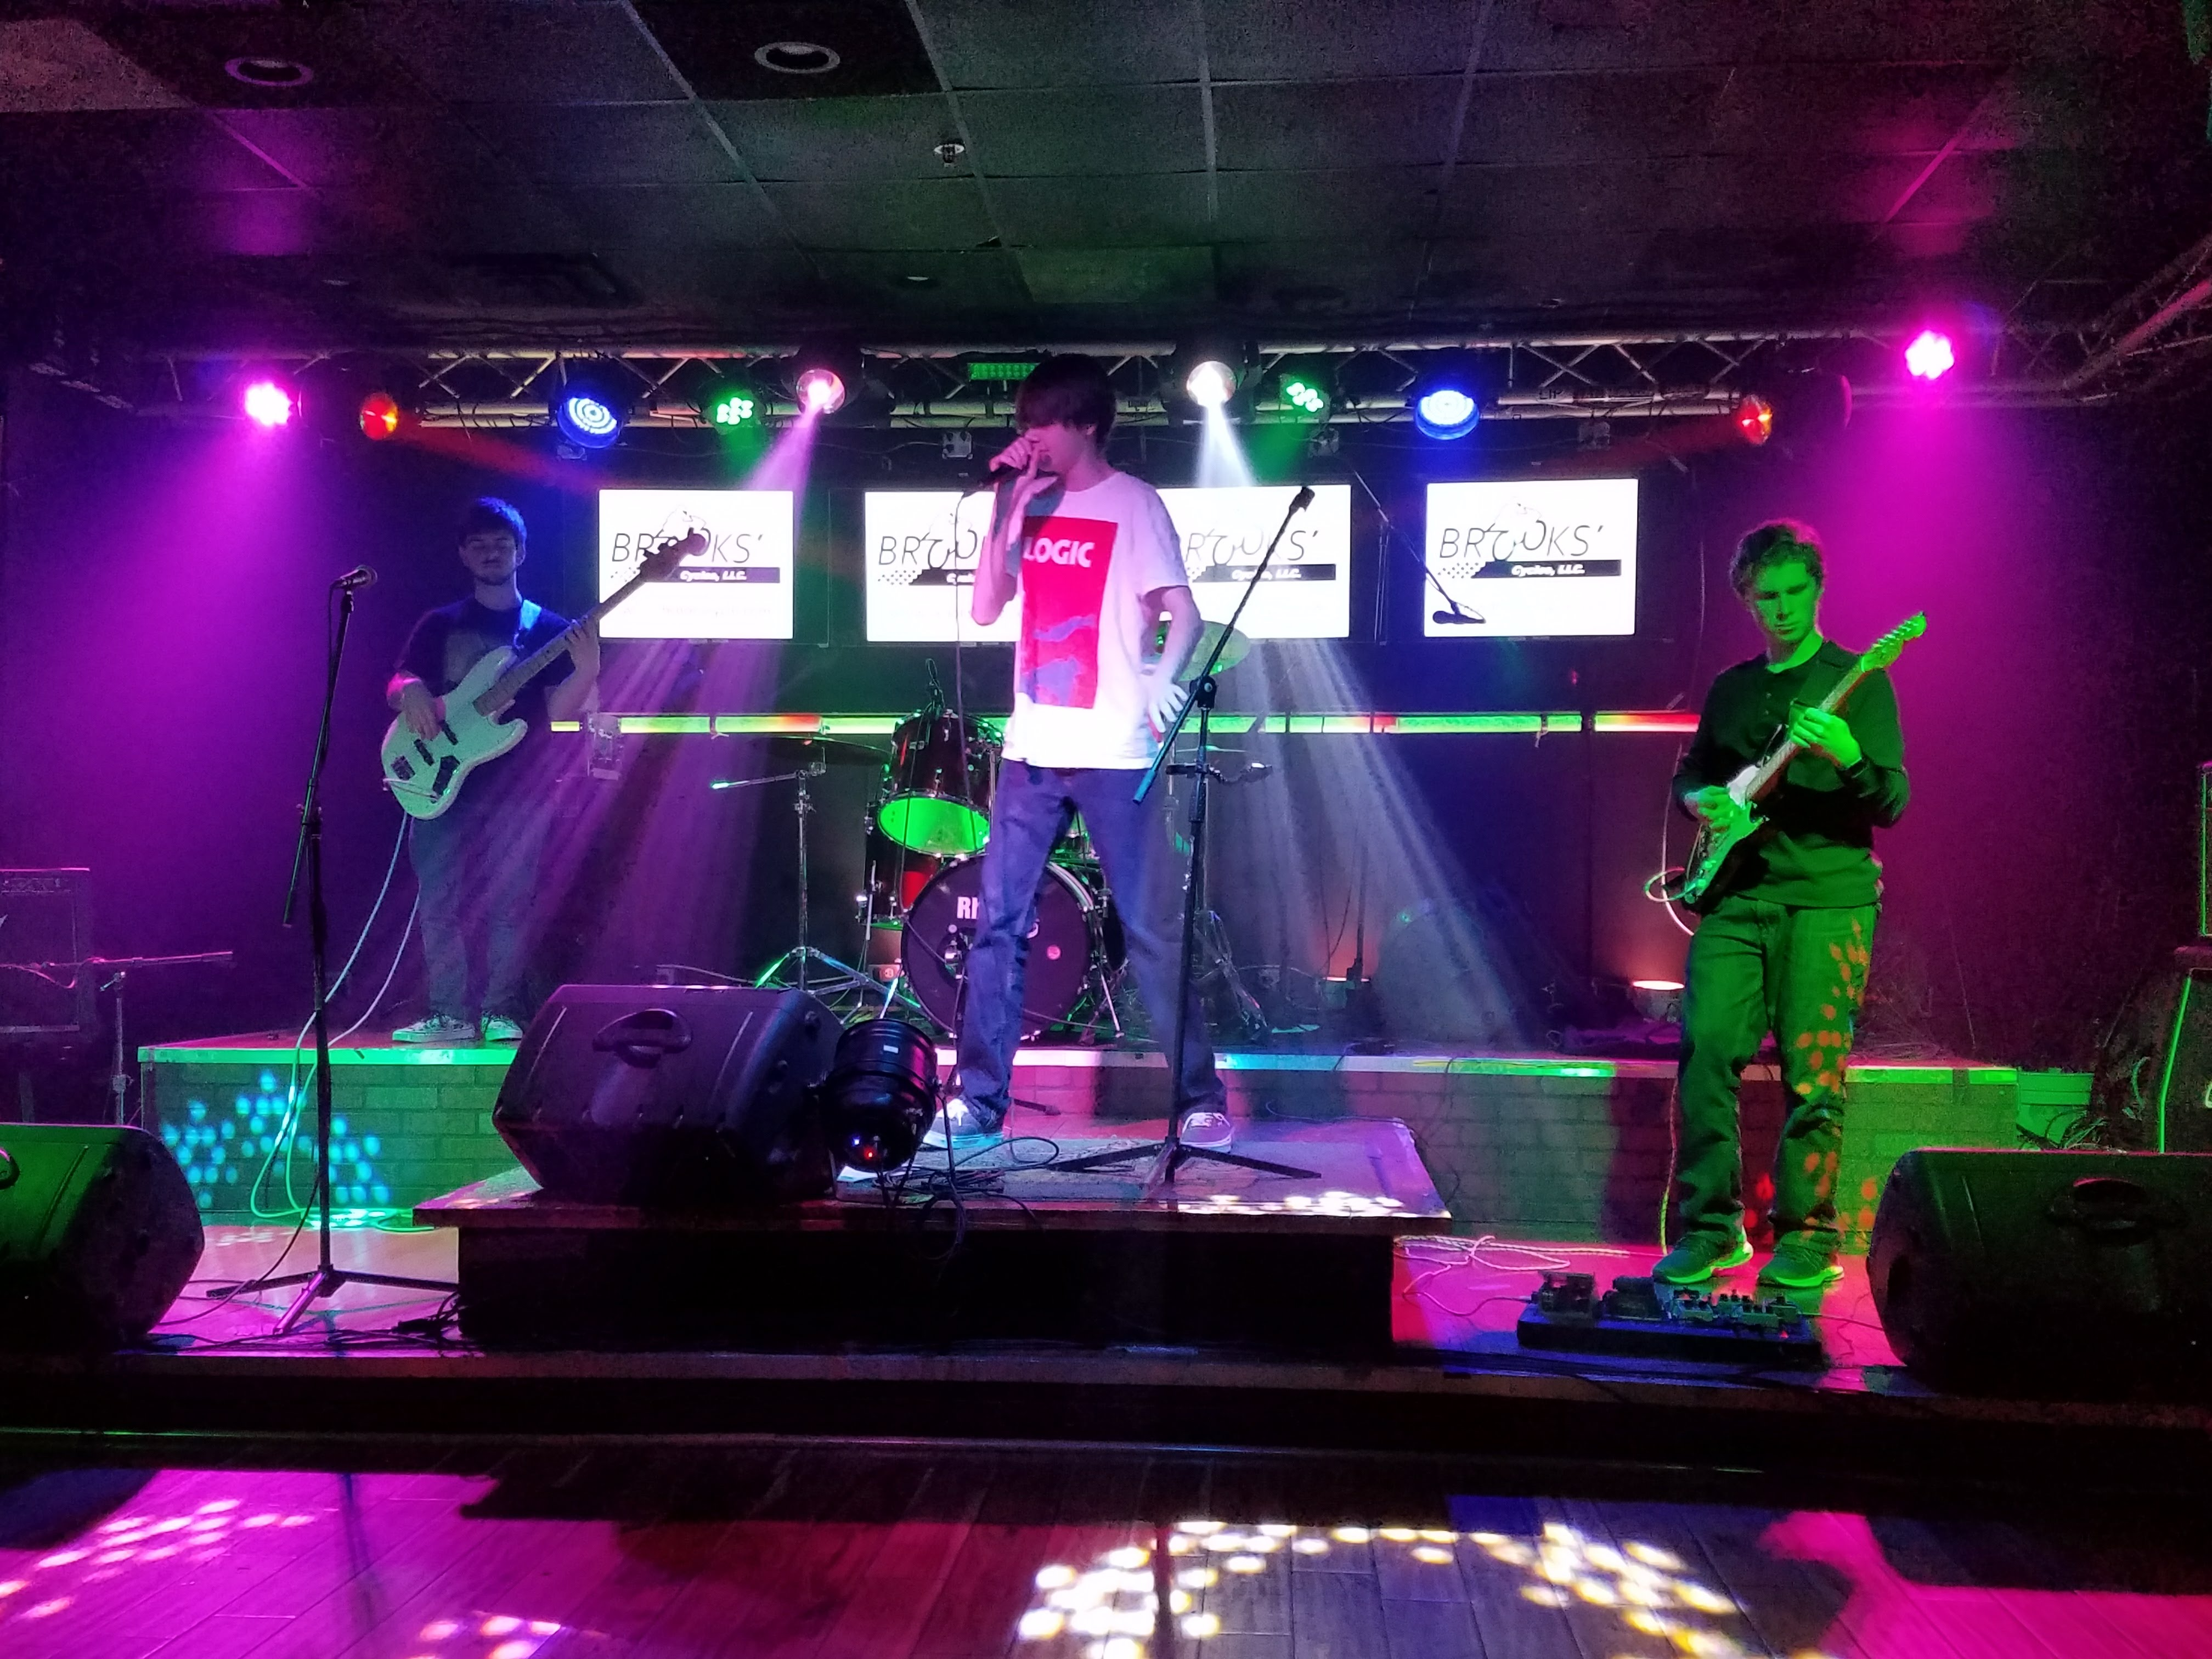 , Devin Streight, Jacob Gemma, Drew Reuschlein, Liam Chen, Devin Streight, Jacob Gemma, Drew Reushlein, FUSE, FUSE Band, Rock Band, Band Maryland,Battle of the bands, Teen Band, fuse band, Best Teen Rock Band, Opening Band, Support Band, Bands For Battles